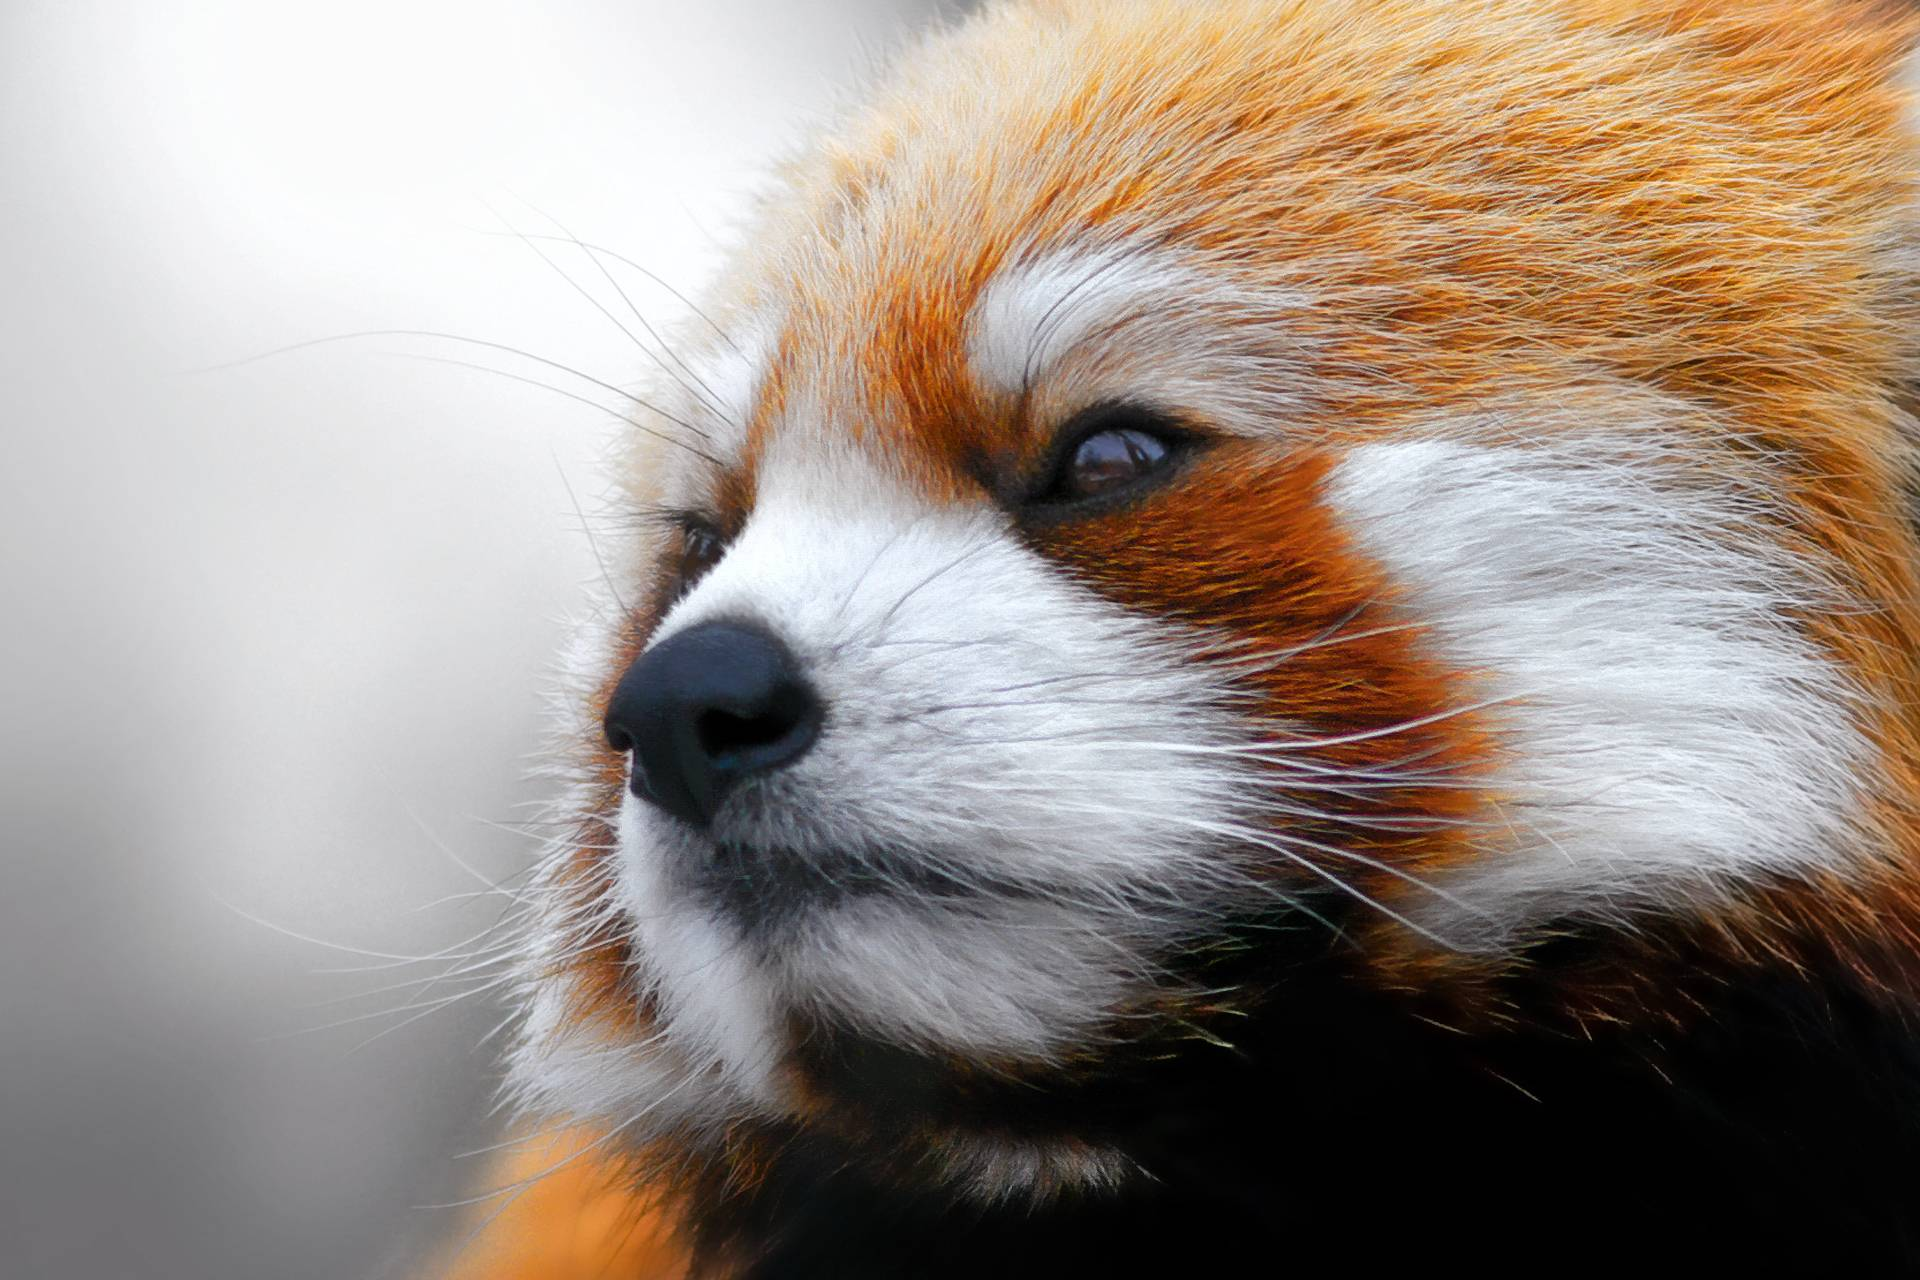 Red Panda Photoshoot | Free Download Wallpaper from wallpaperank.com